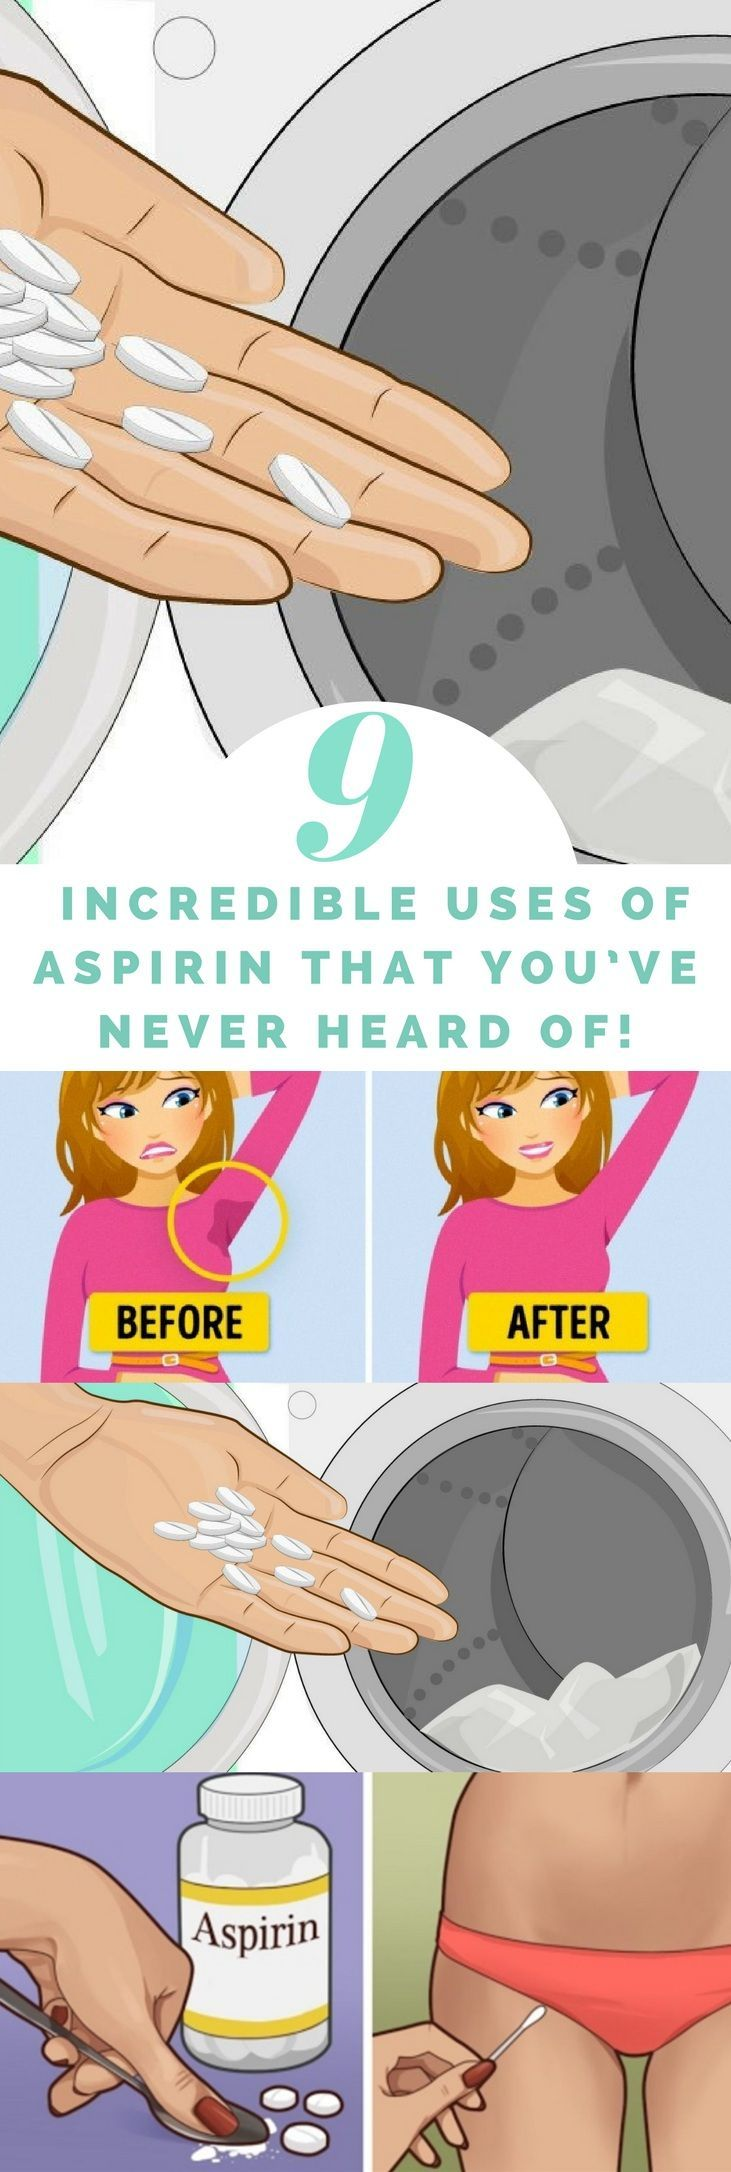 9 Incredible Uses Of Aspirin That You've Never Heard Of!